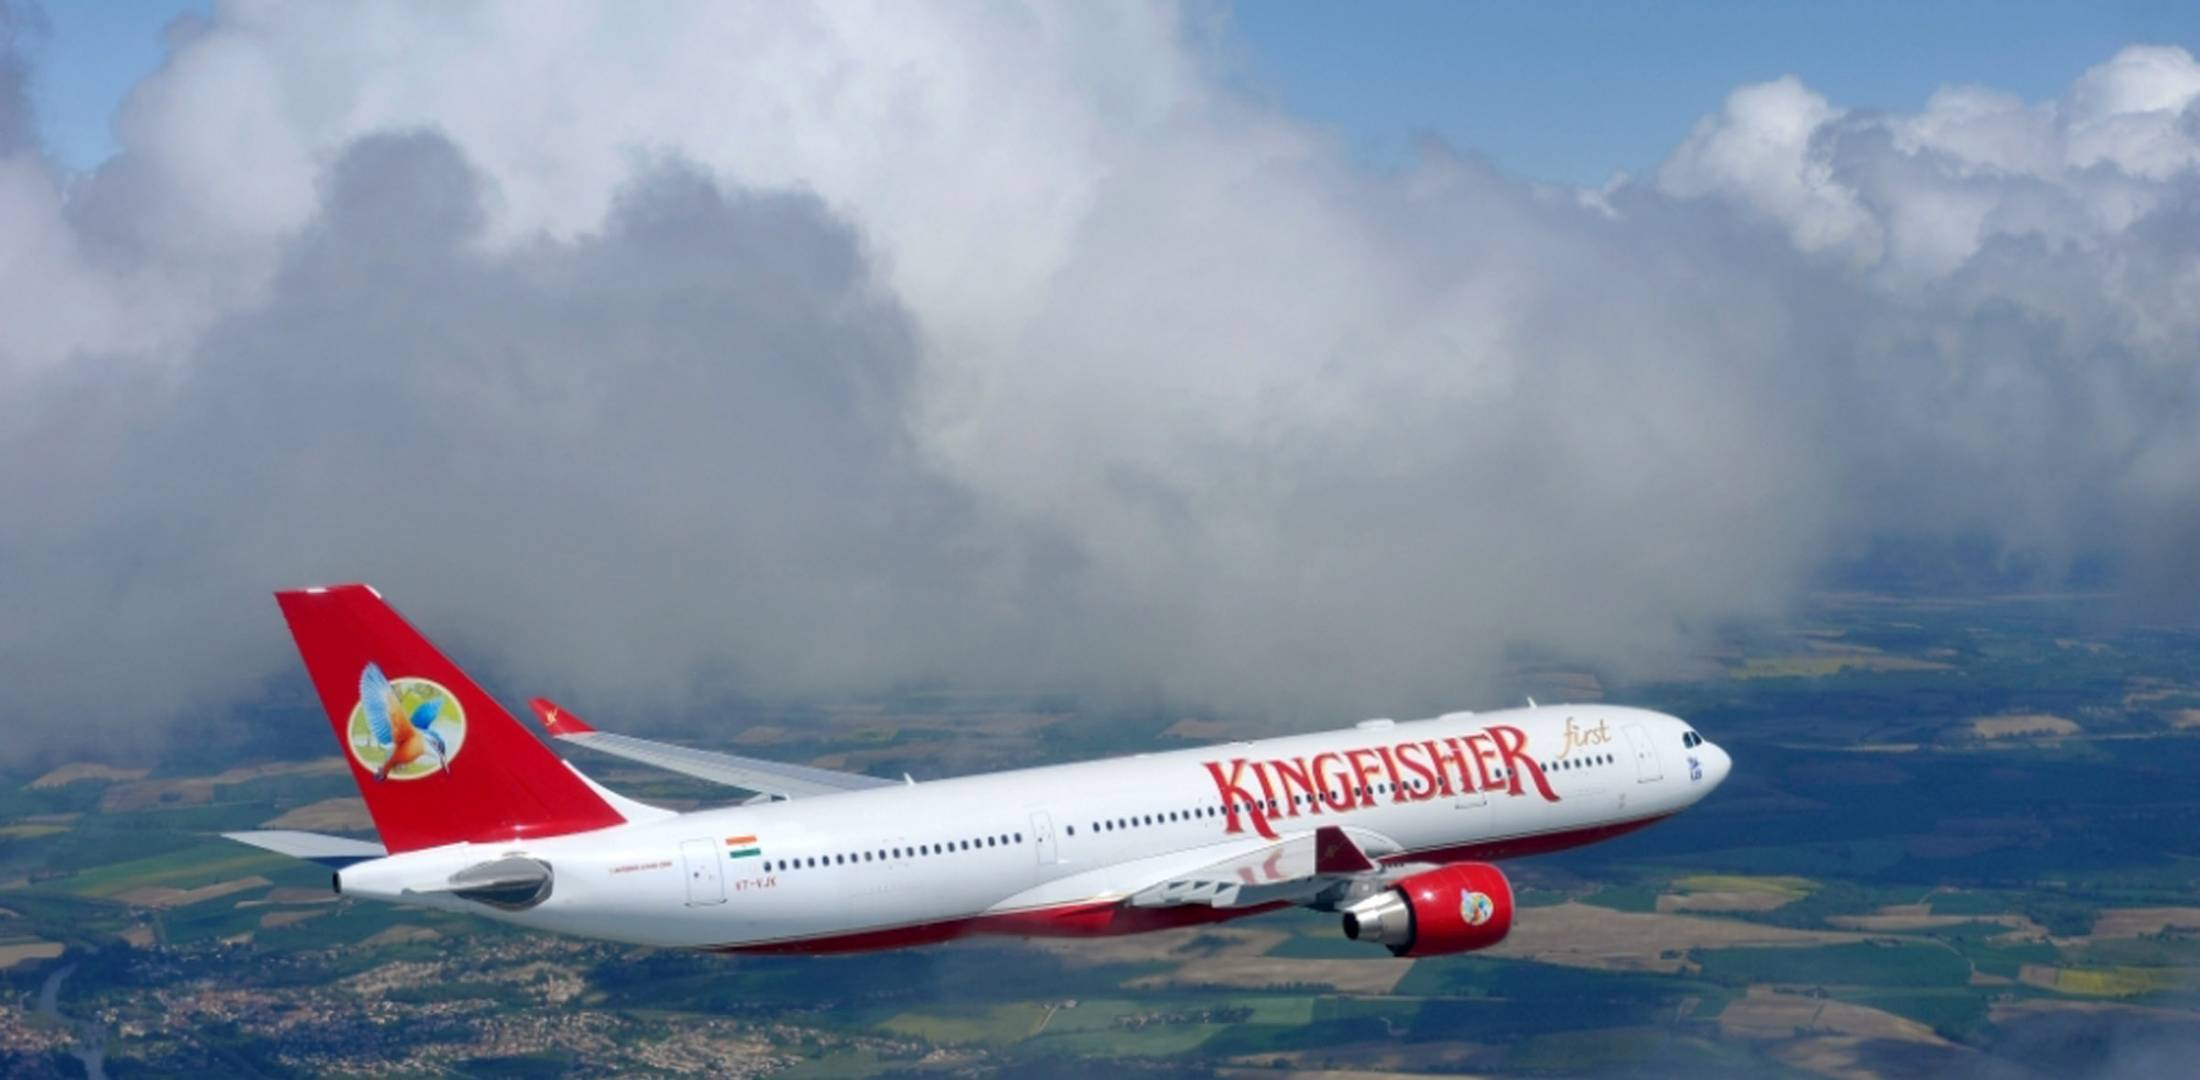 Kingfisher A330-200